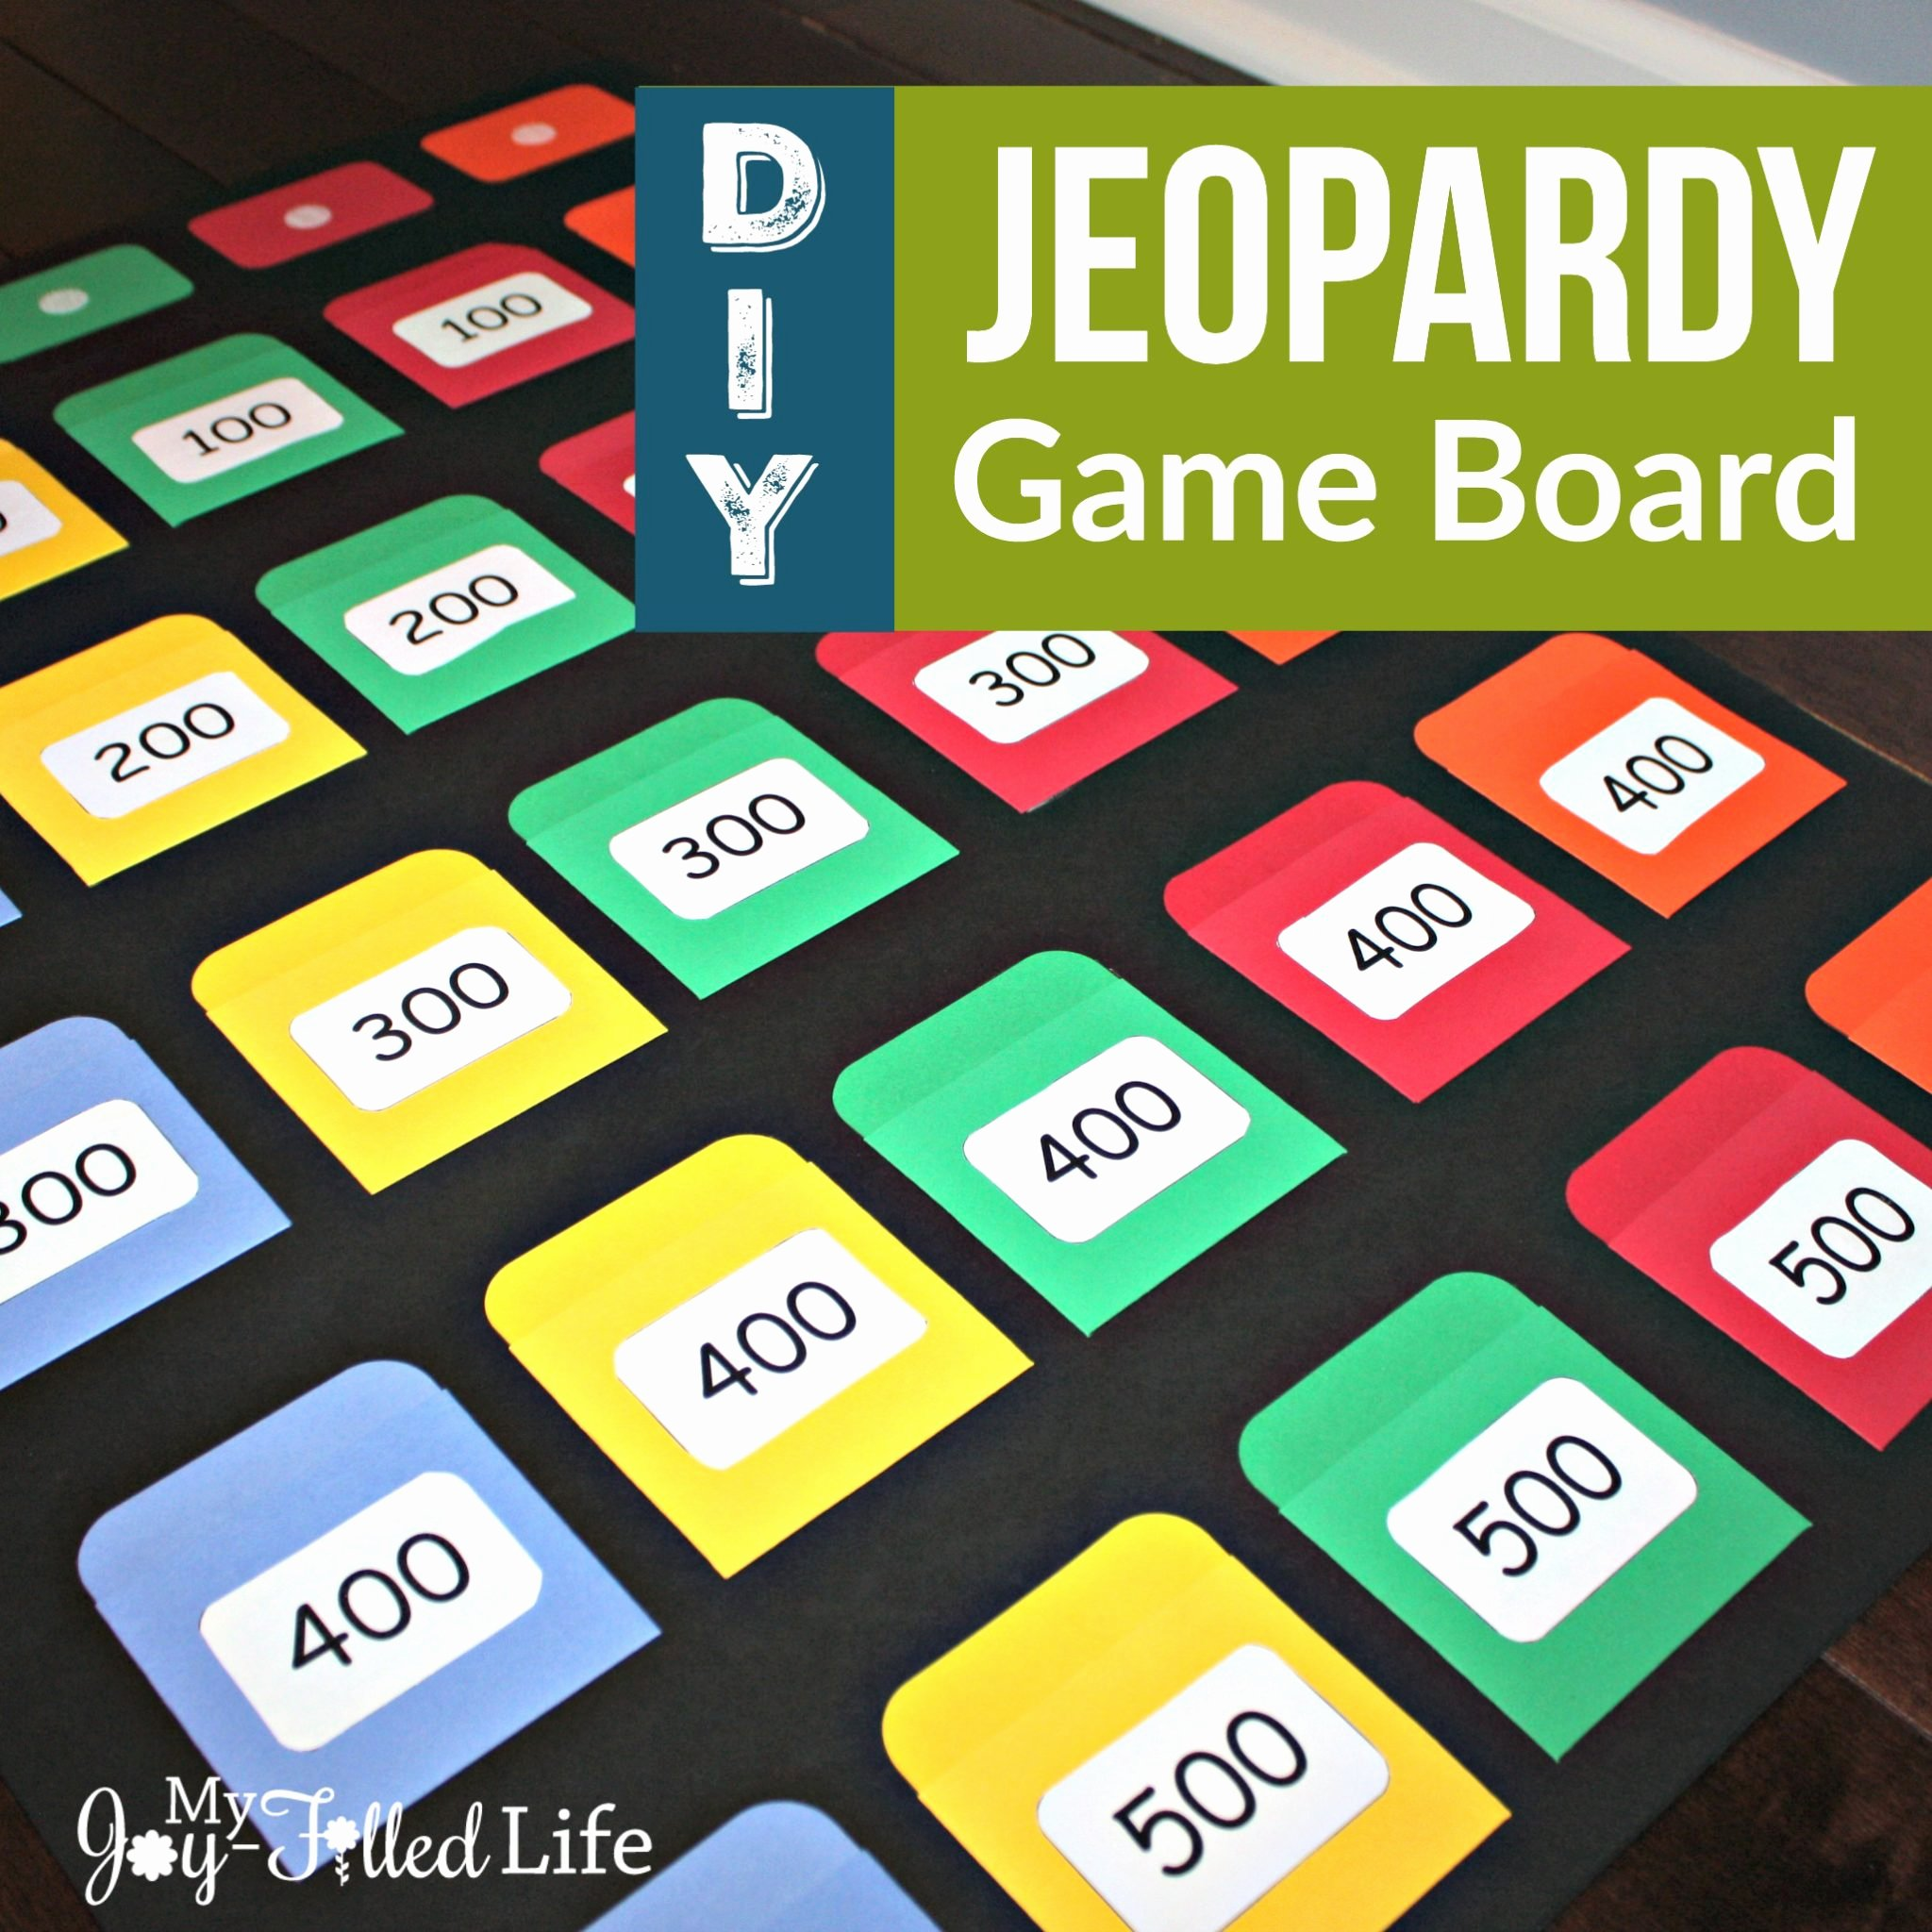 Creating A Board Game Template Inspirational Diy Jeopardy Game Board My Joy Filled Life